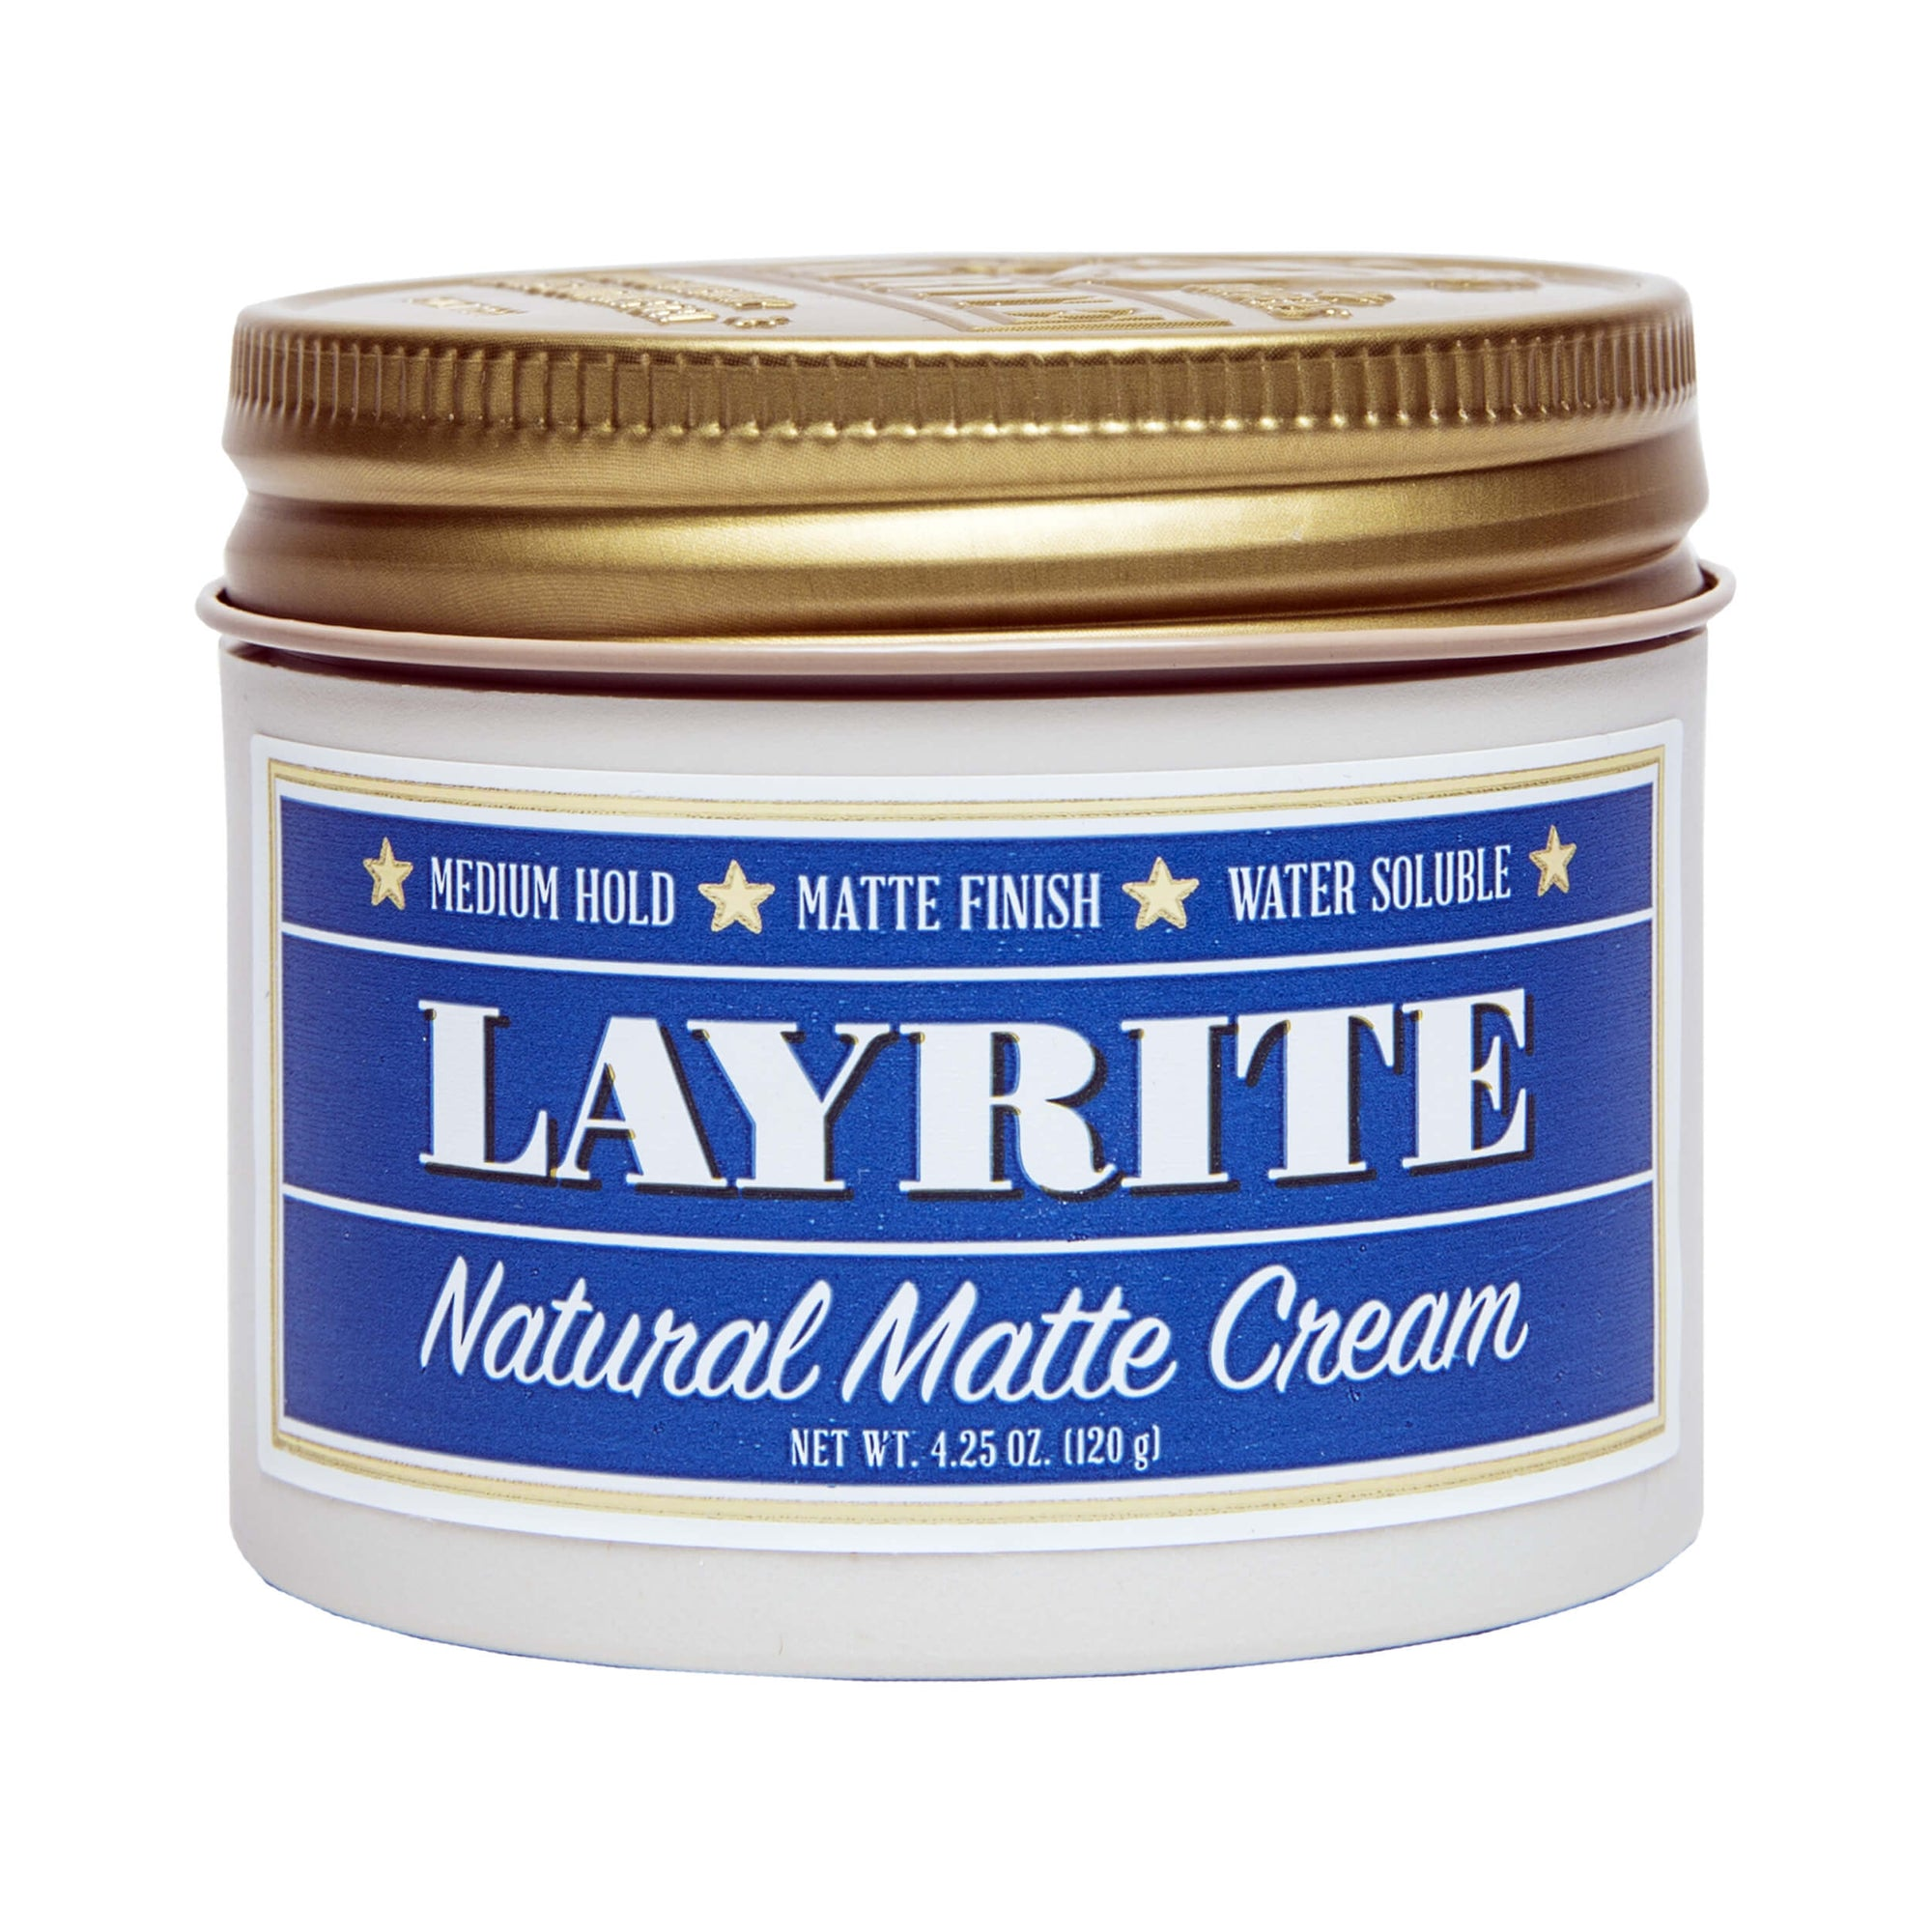 Layrite Natural Matte Cream 120 g (4.25 oz)